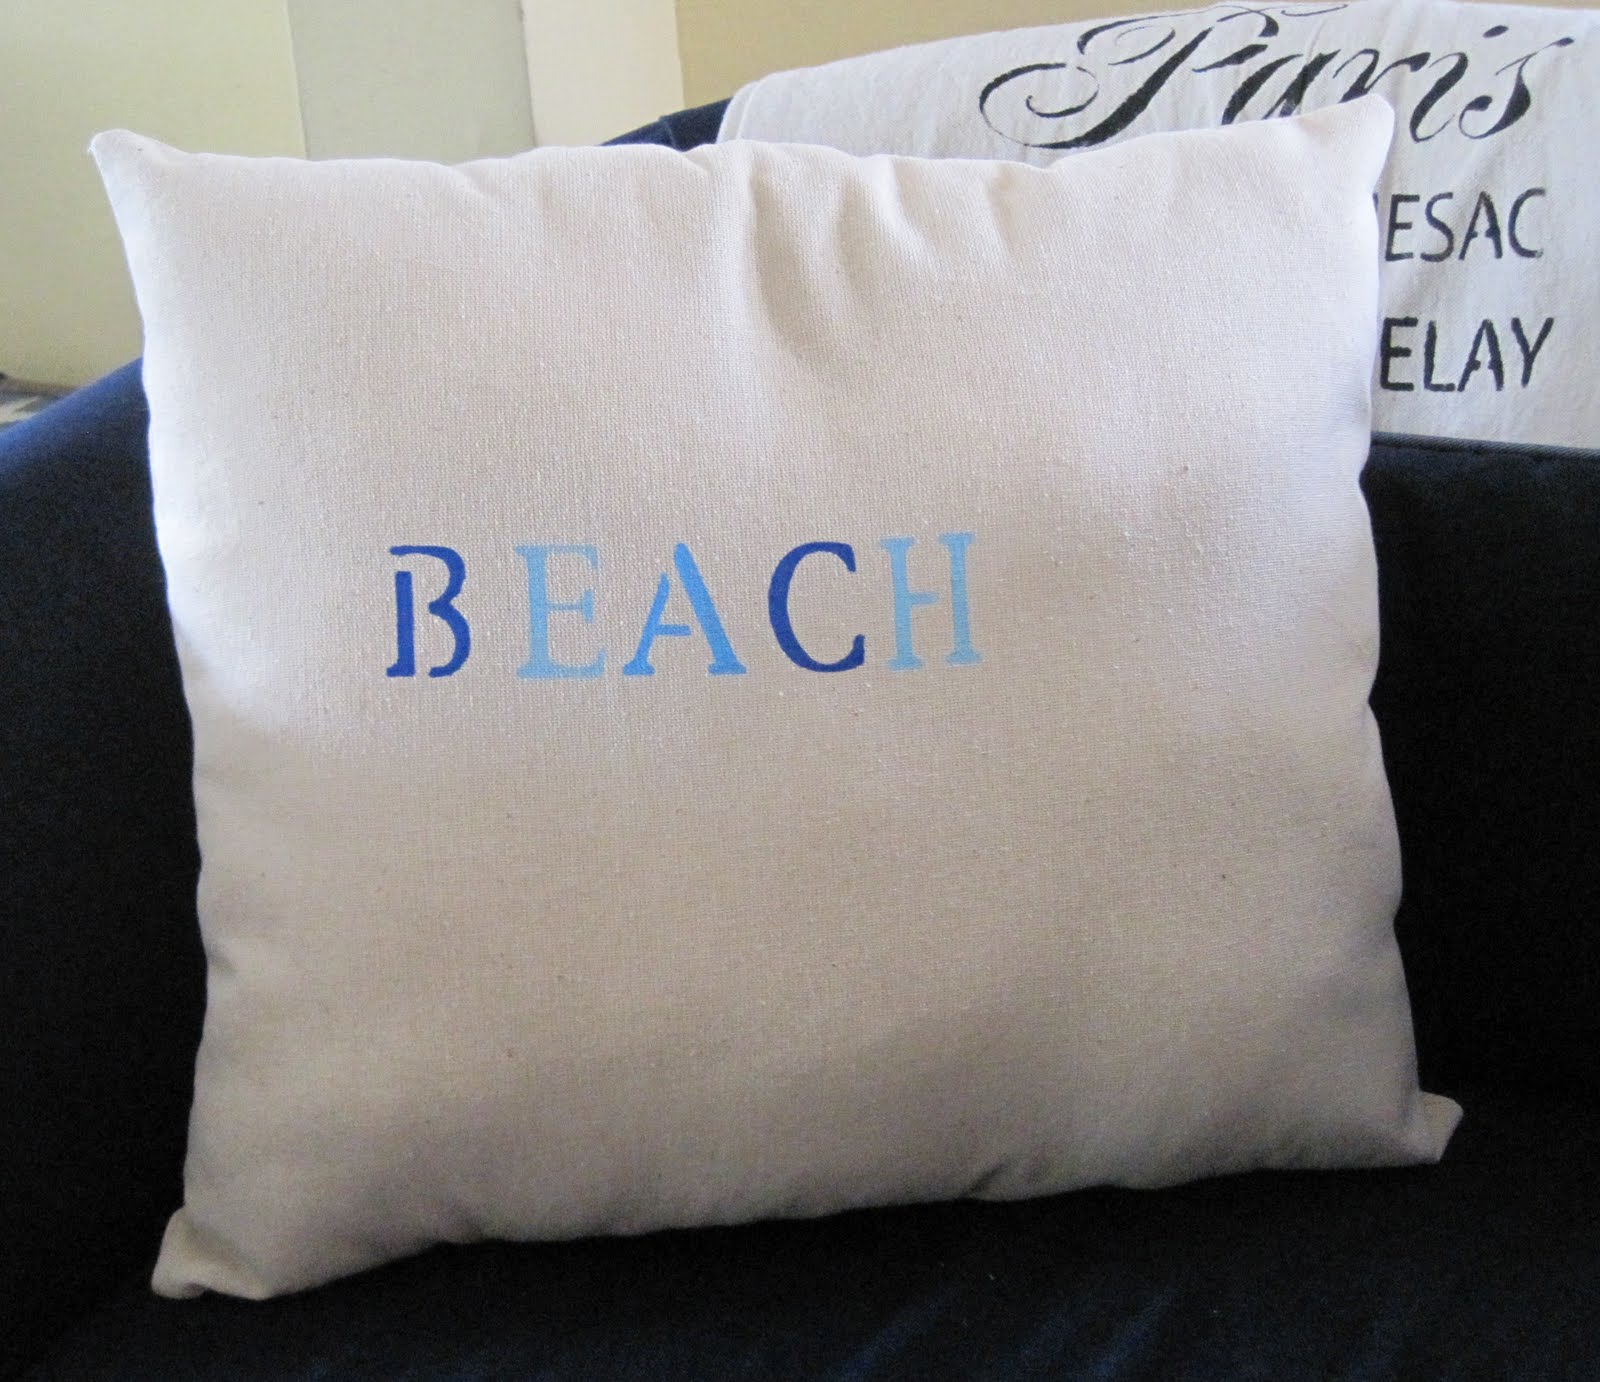 shipping wholesale cover pillowcase aliexpress pillows cushion on w free summer pillow com sea decoration and sofa case beach get landscape buy throw covers home decorative